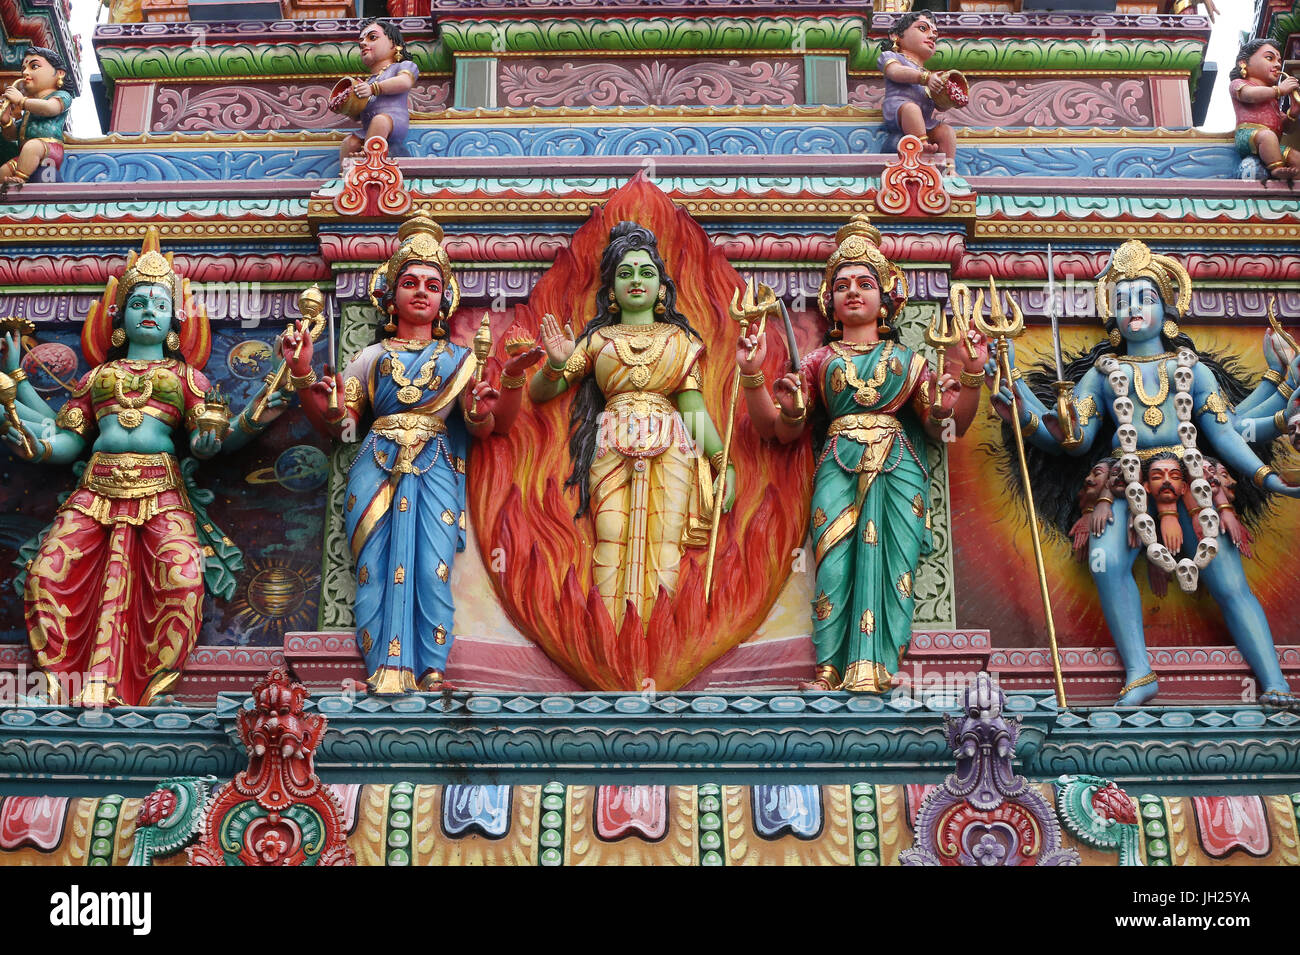 Sri Veeramakaliamman Hindu Temple. Hindu deities. Singapore. Stock Photo